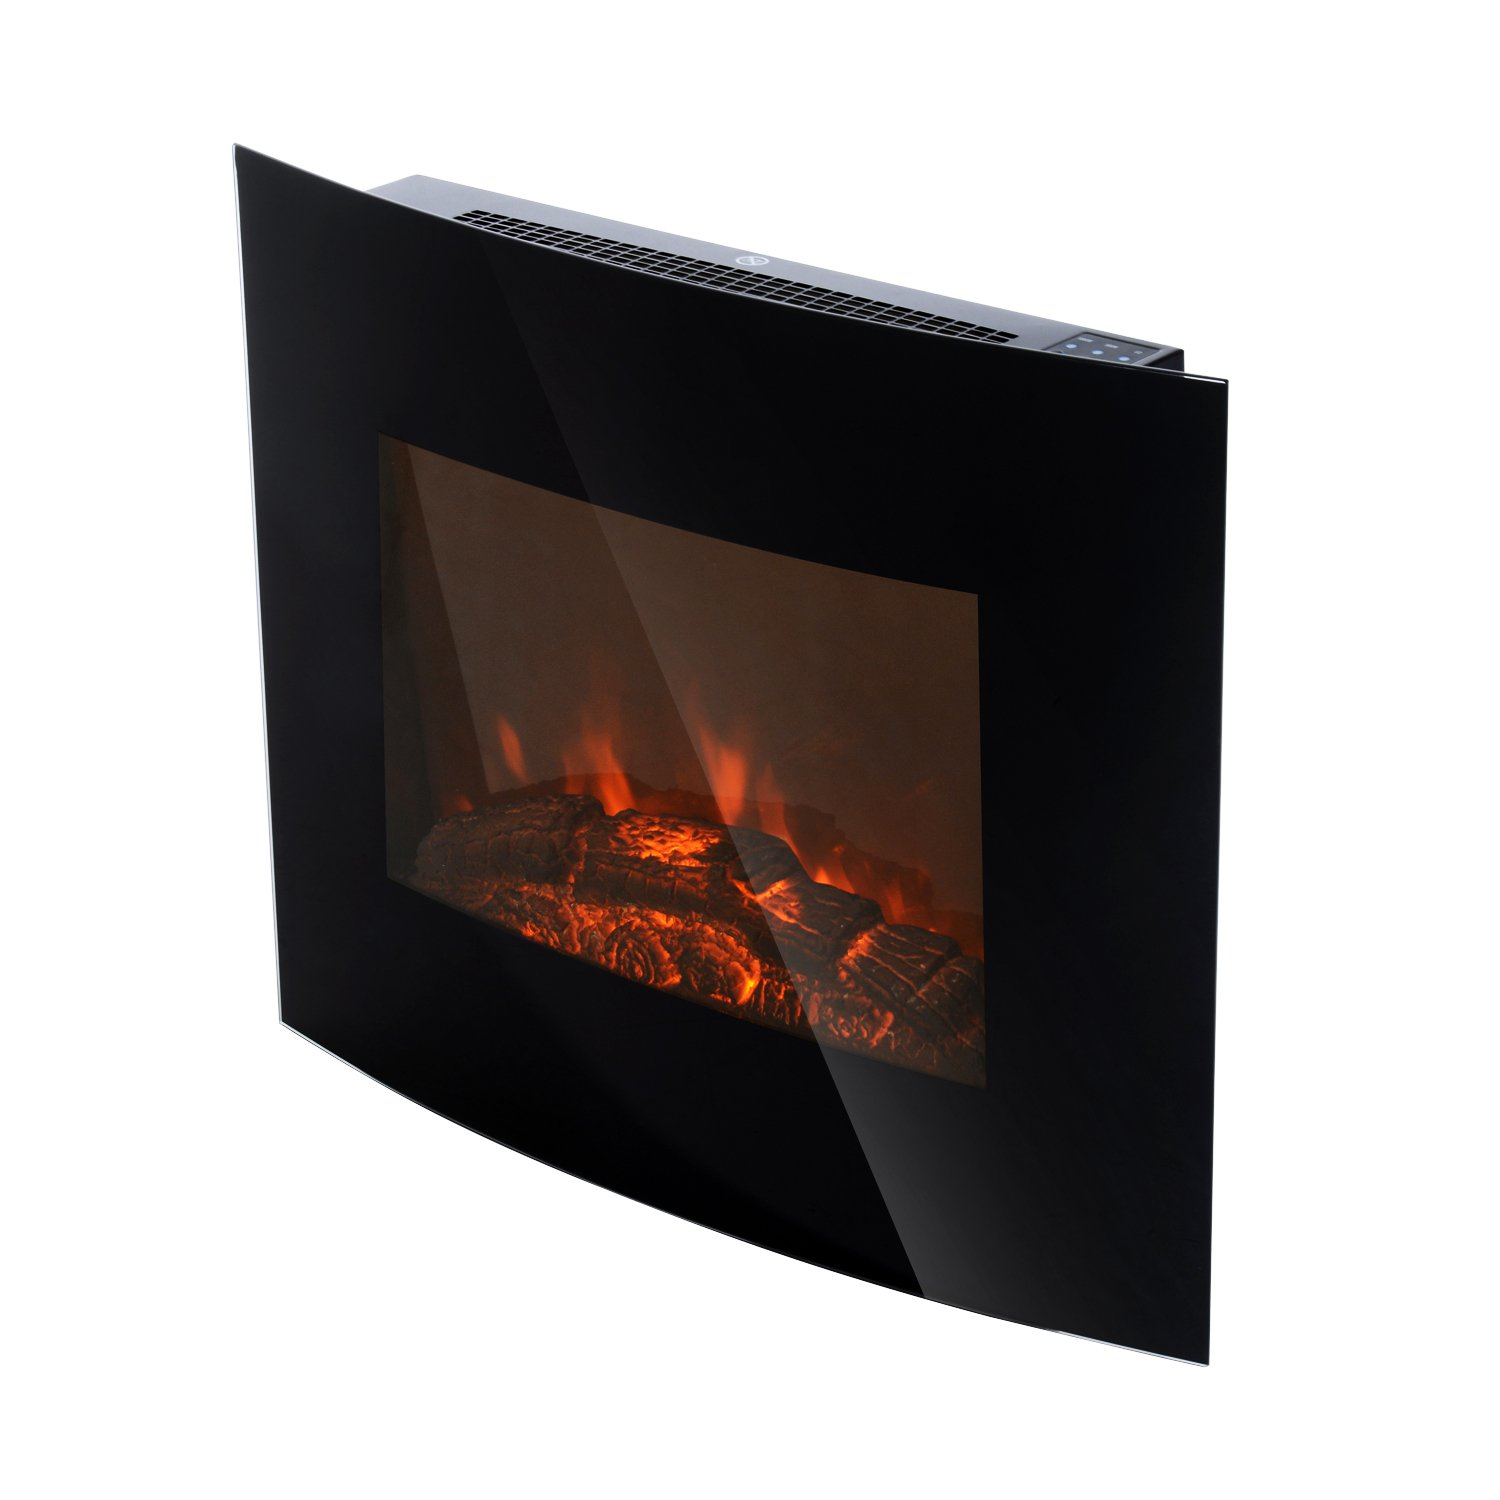 Decoracion chimeneas electricas chimeneas minimal - Estufas decorativas electricas ...